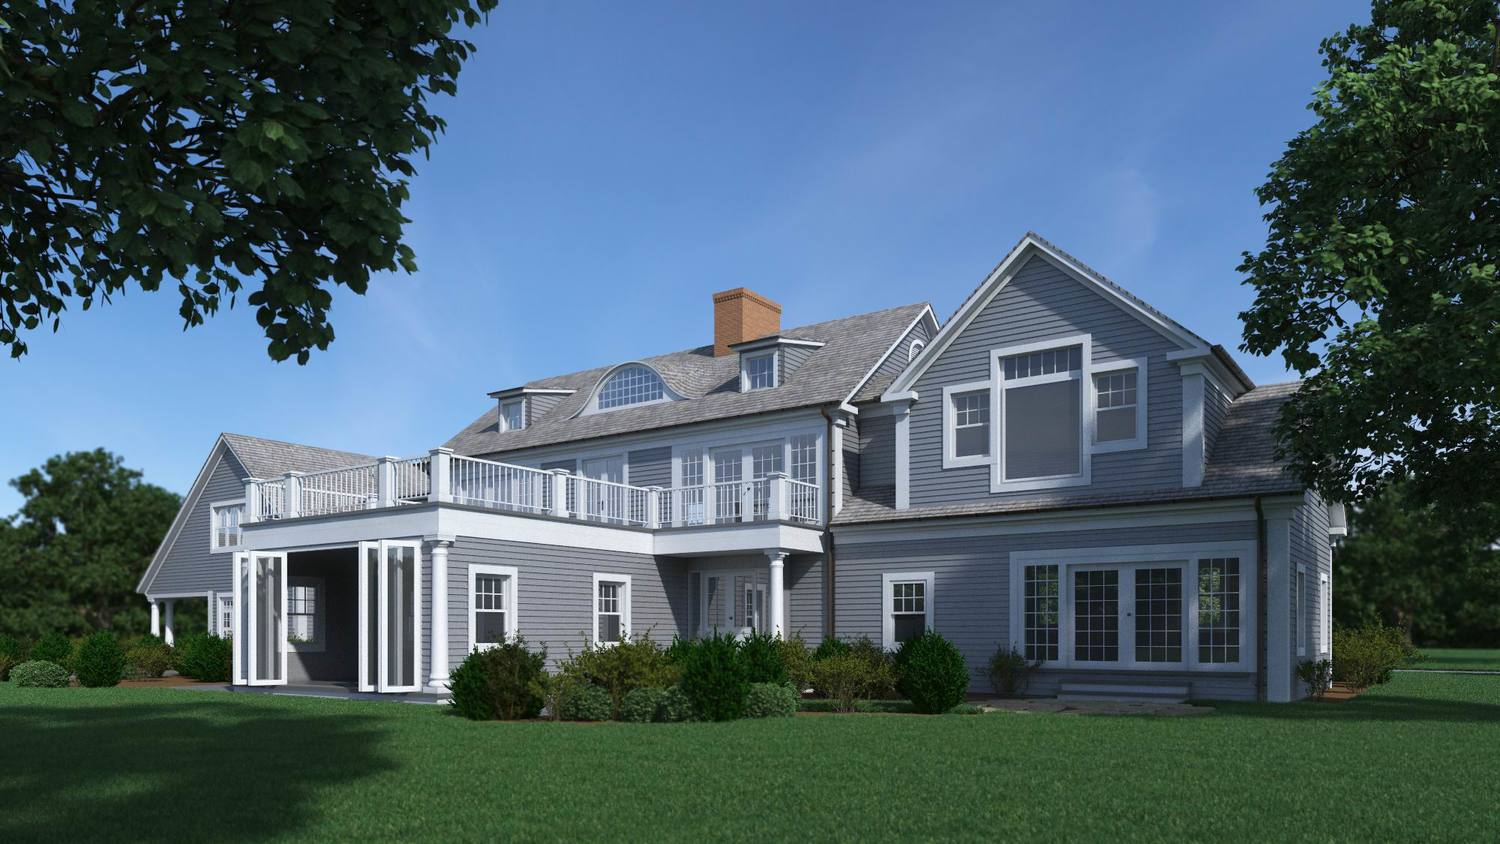 We offer high-quality 3D home plan rendering services.